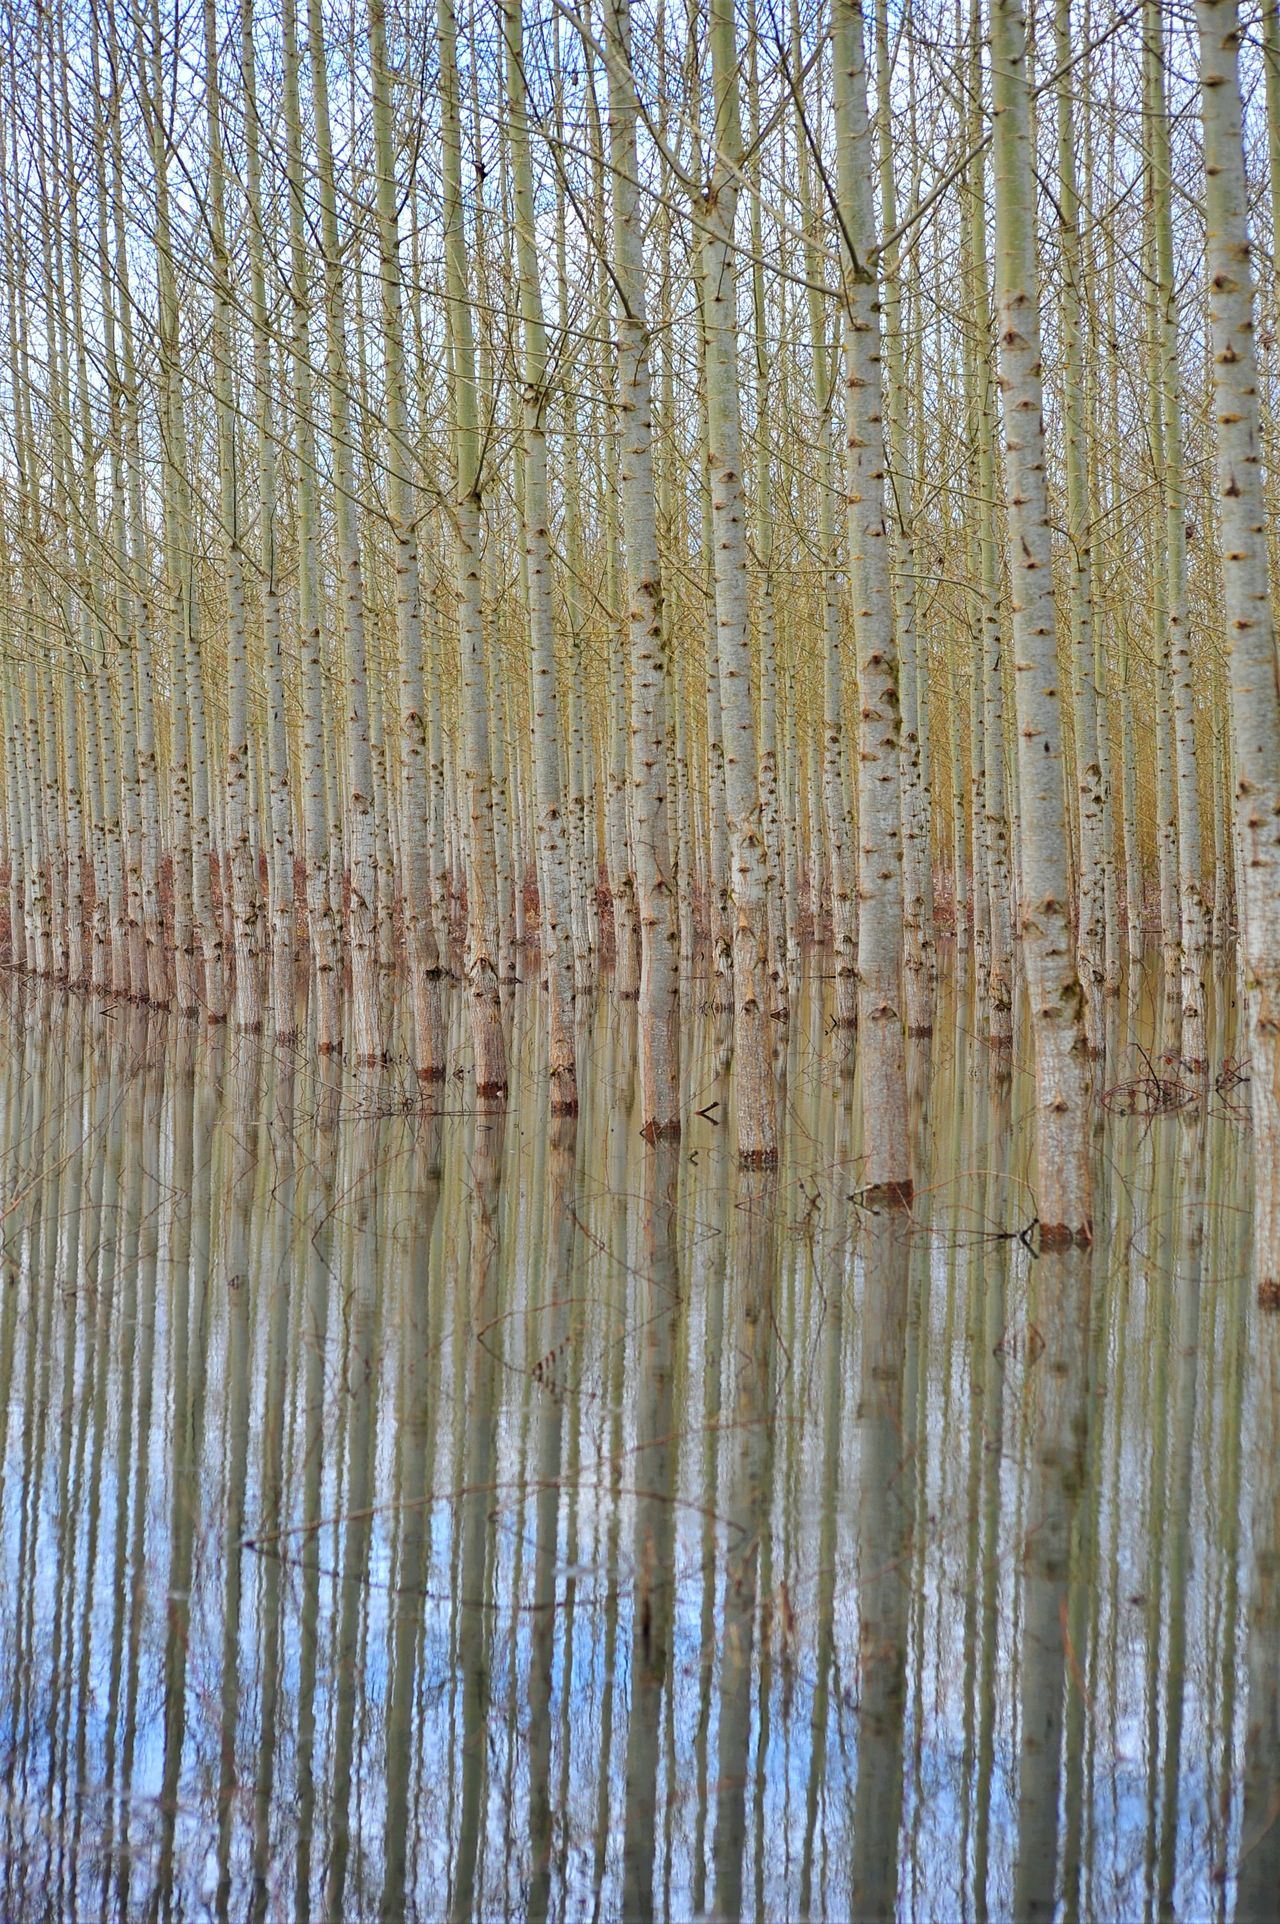 Beauty In Nature Cottonwood Trees Day Nature No People Outdoors Reflection Scenics Tranquil Scene Tranquility Tree Tree Farm Water If Trees Could Speak Break The Mold